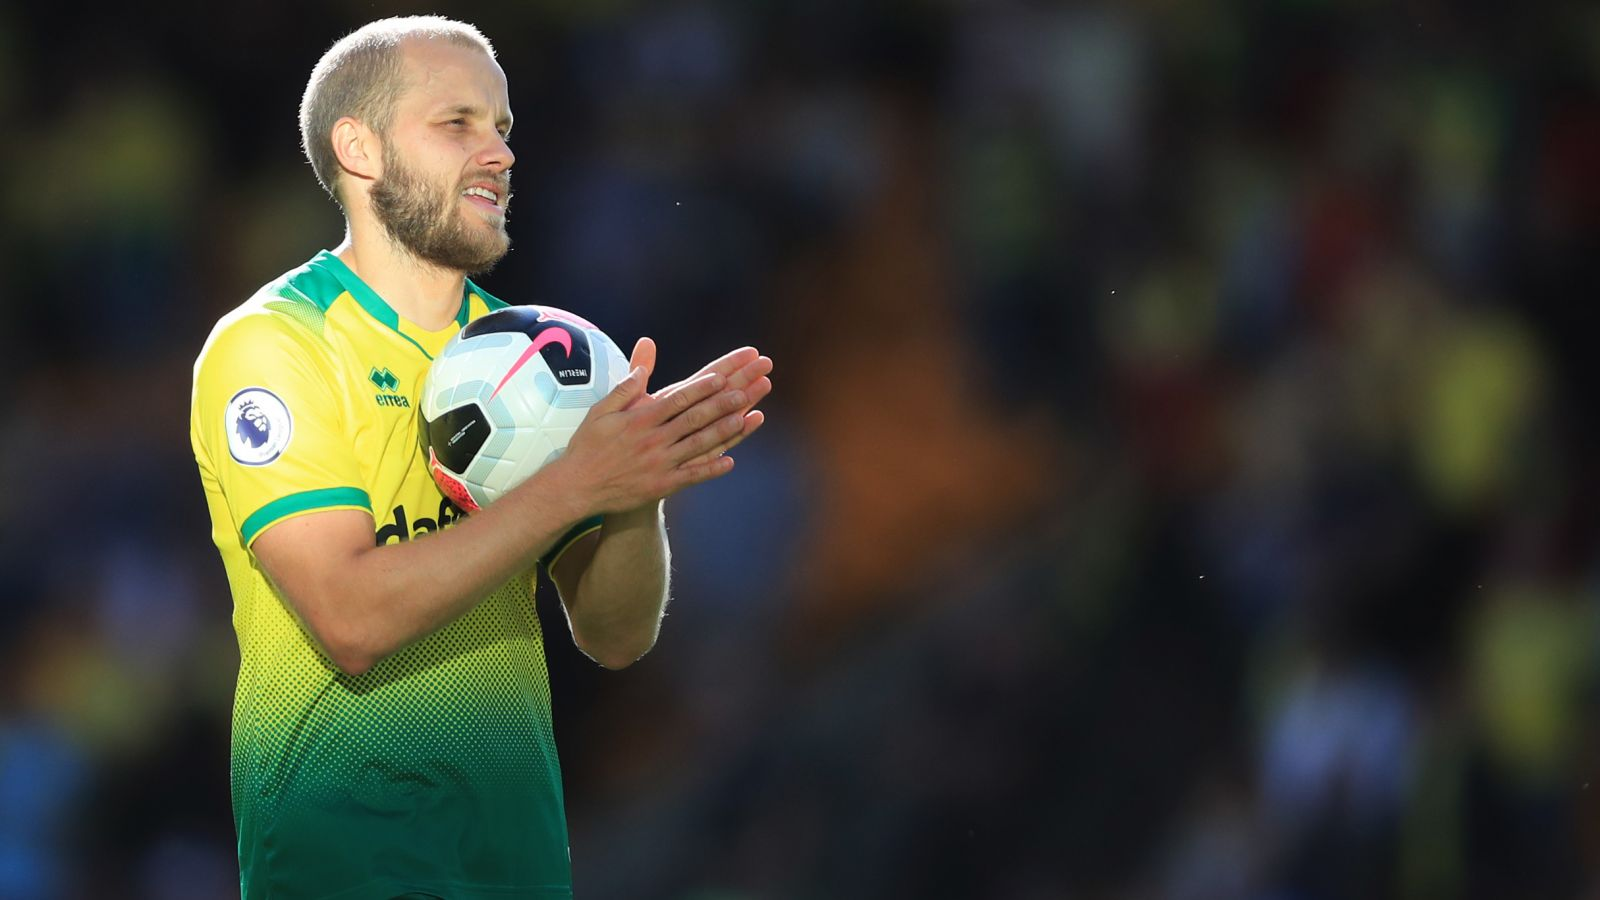 EPL 2019-20 DFS Lineup Tips: Match Day 3